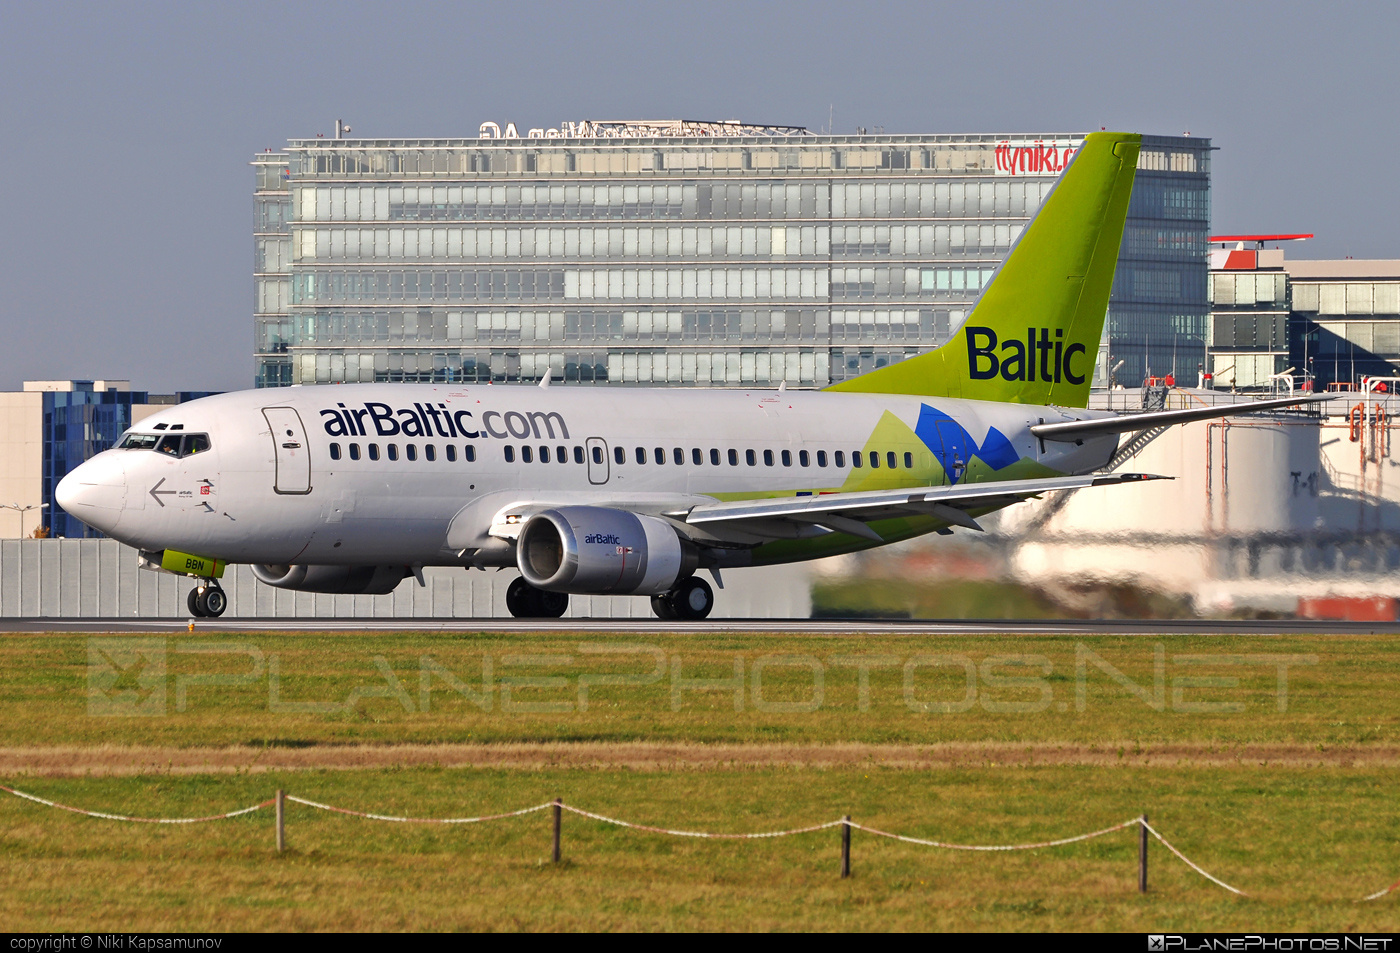 YL-BBN - Boeing 737-500 operated by Air Baltic taken by ...